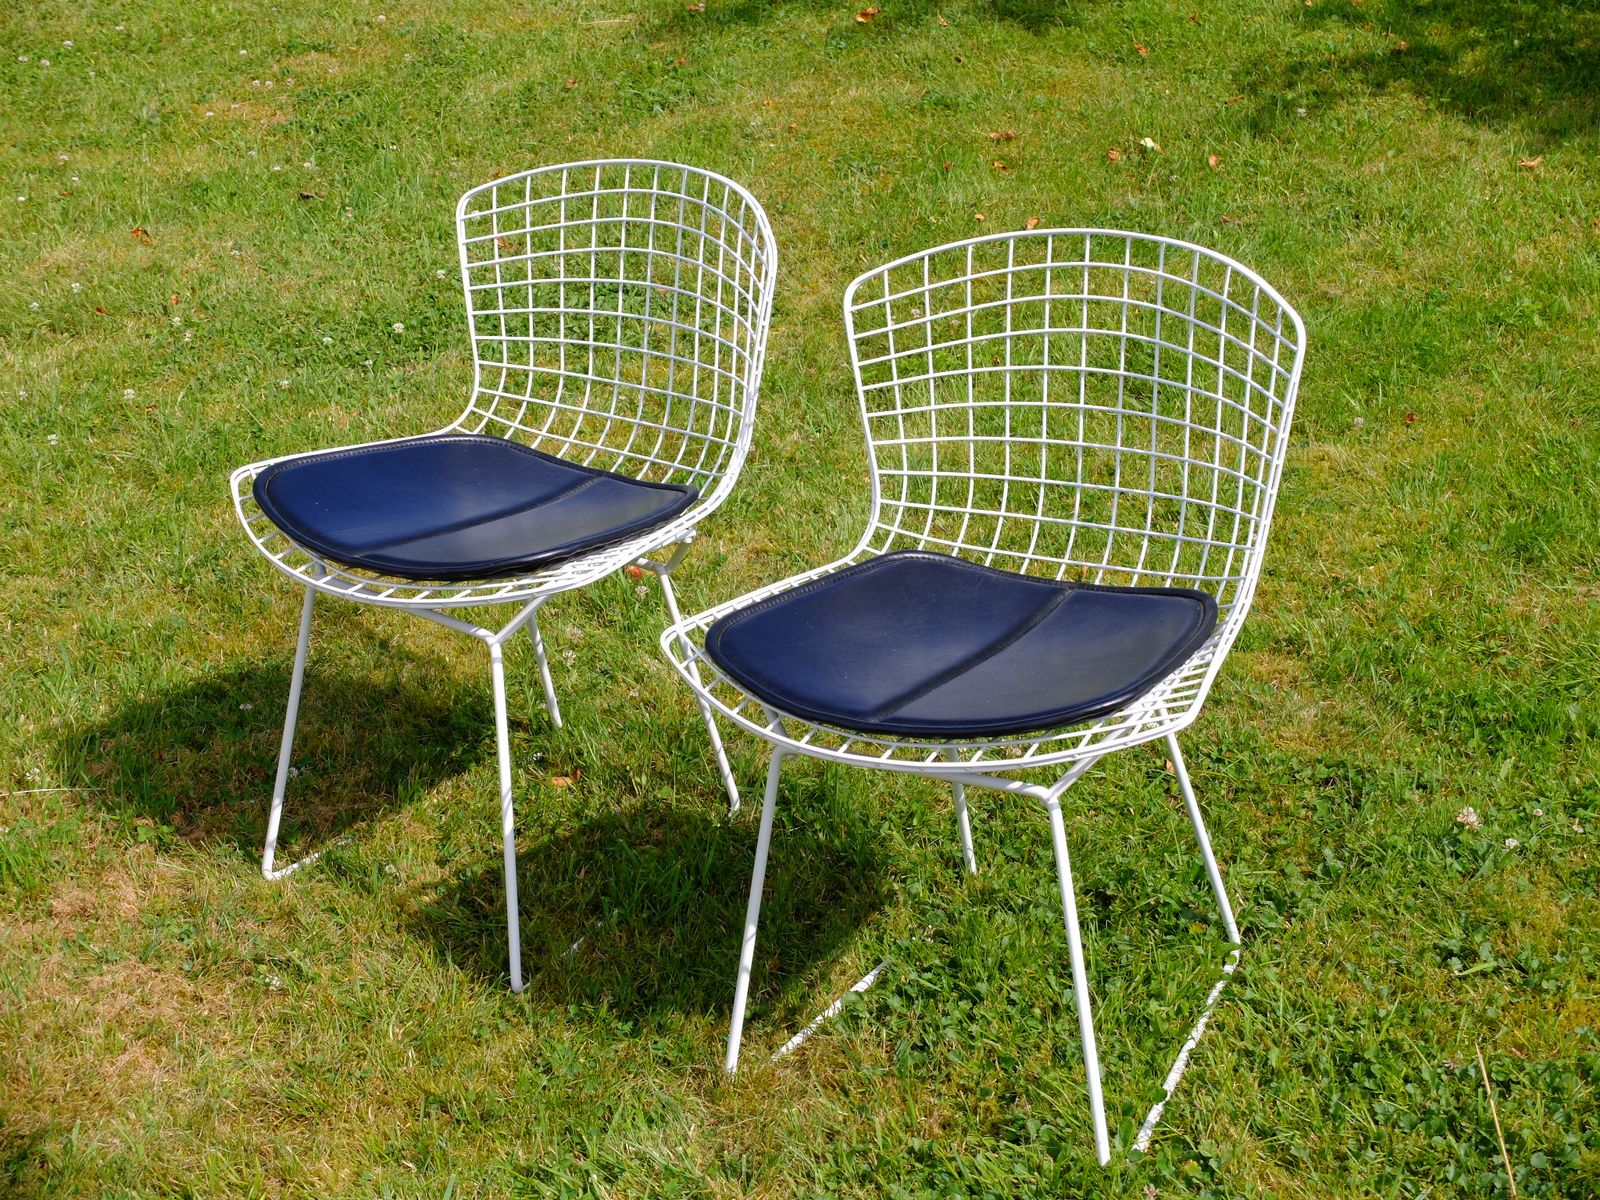 Chairs by harry bertoia for knoll 1952 set of 2 for sale at pamono - Knoll inc chairs ...